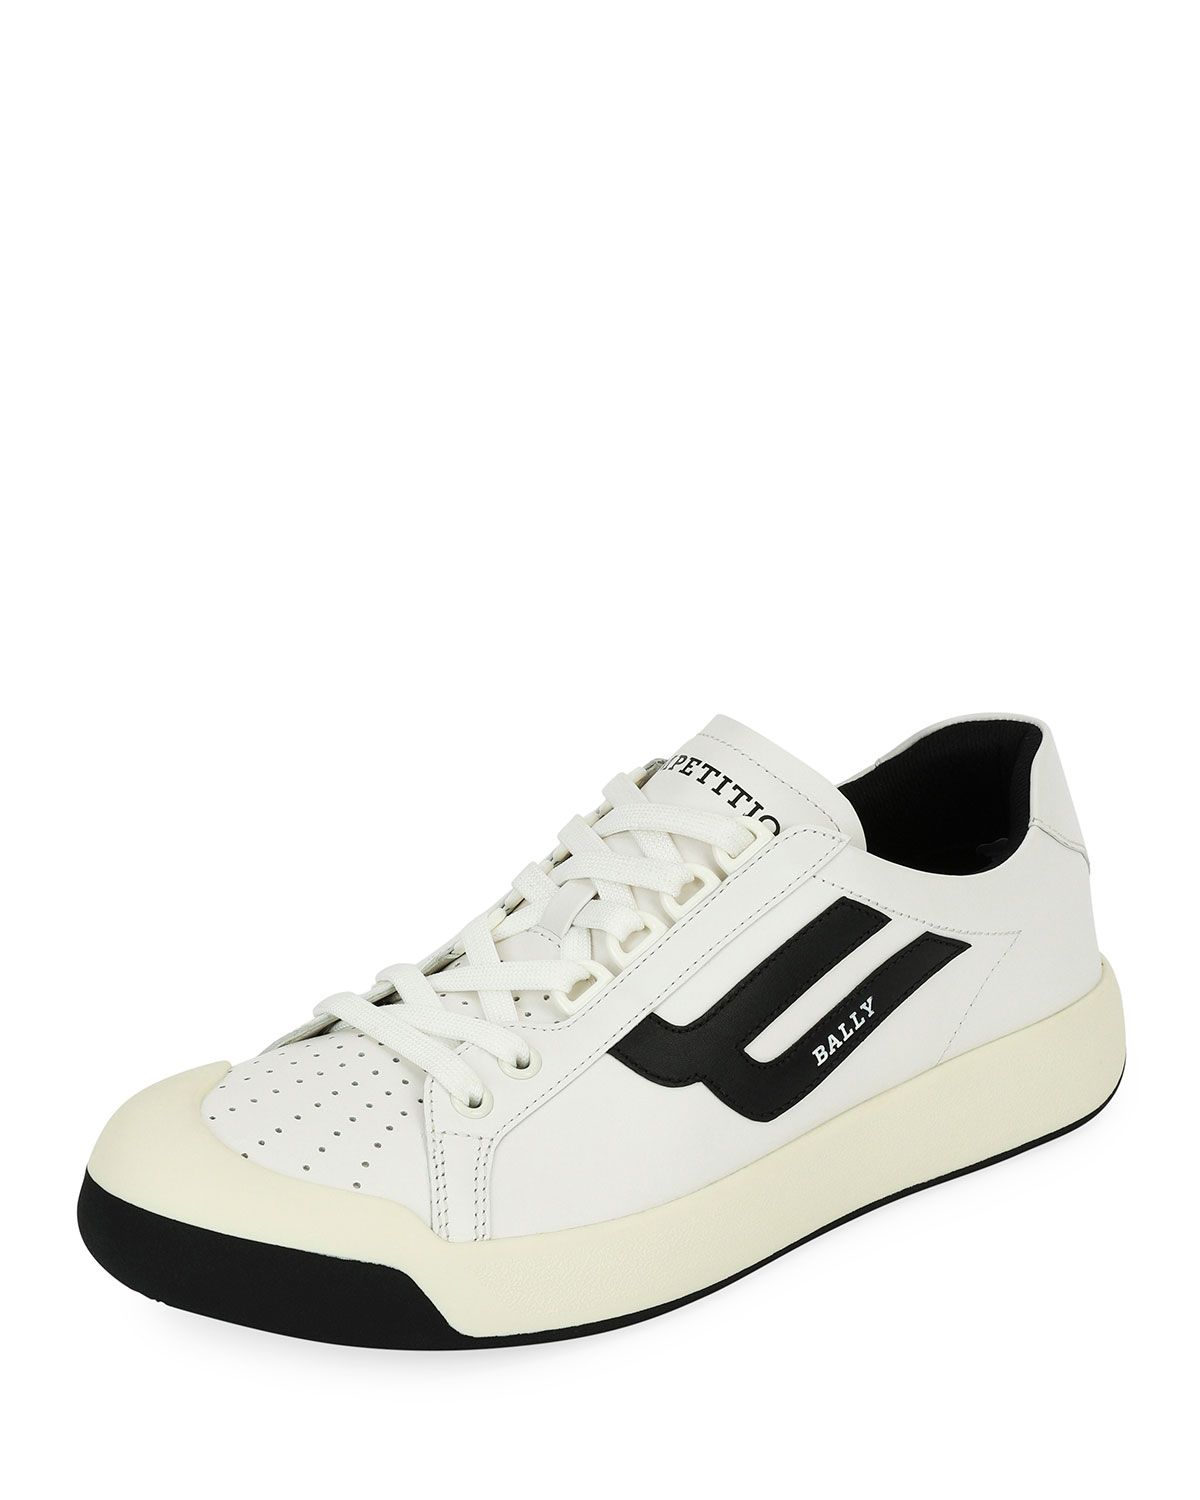 Top Competition Retro Low New Sneaker 3AjLR54